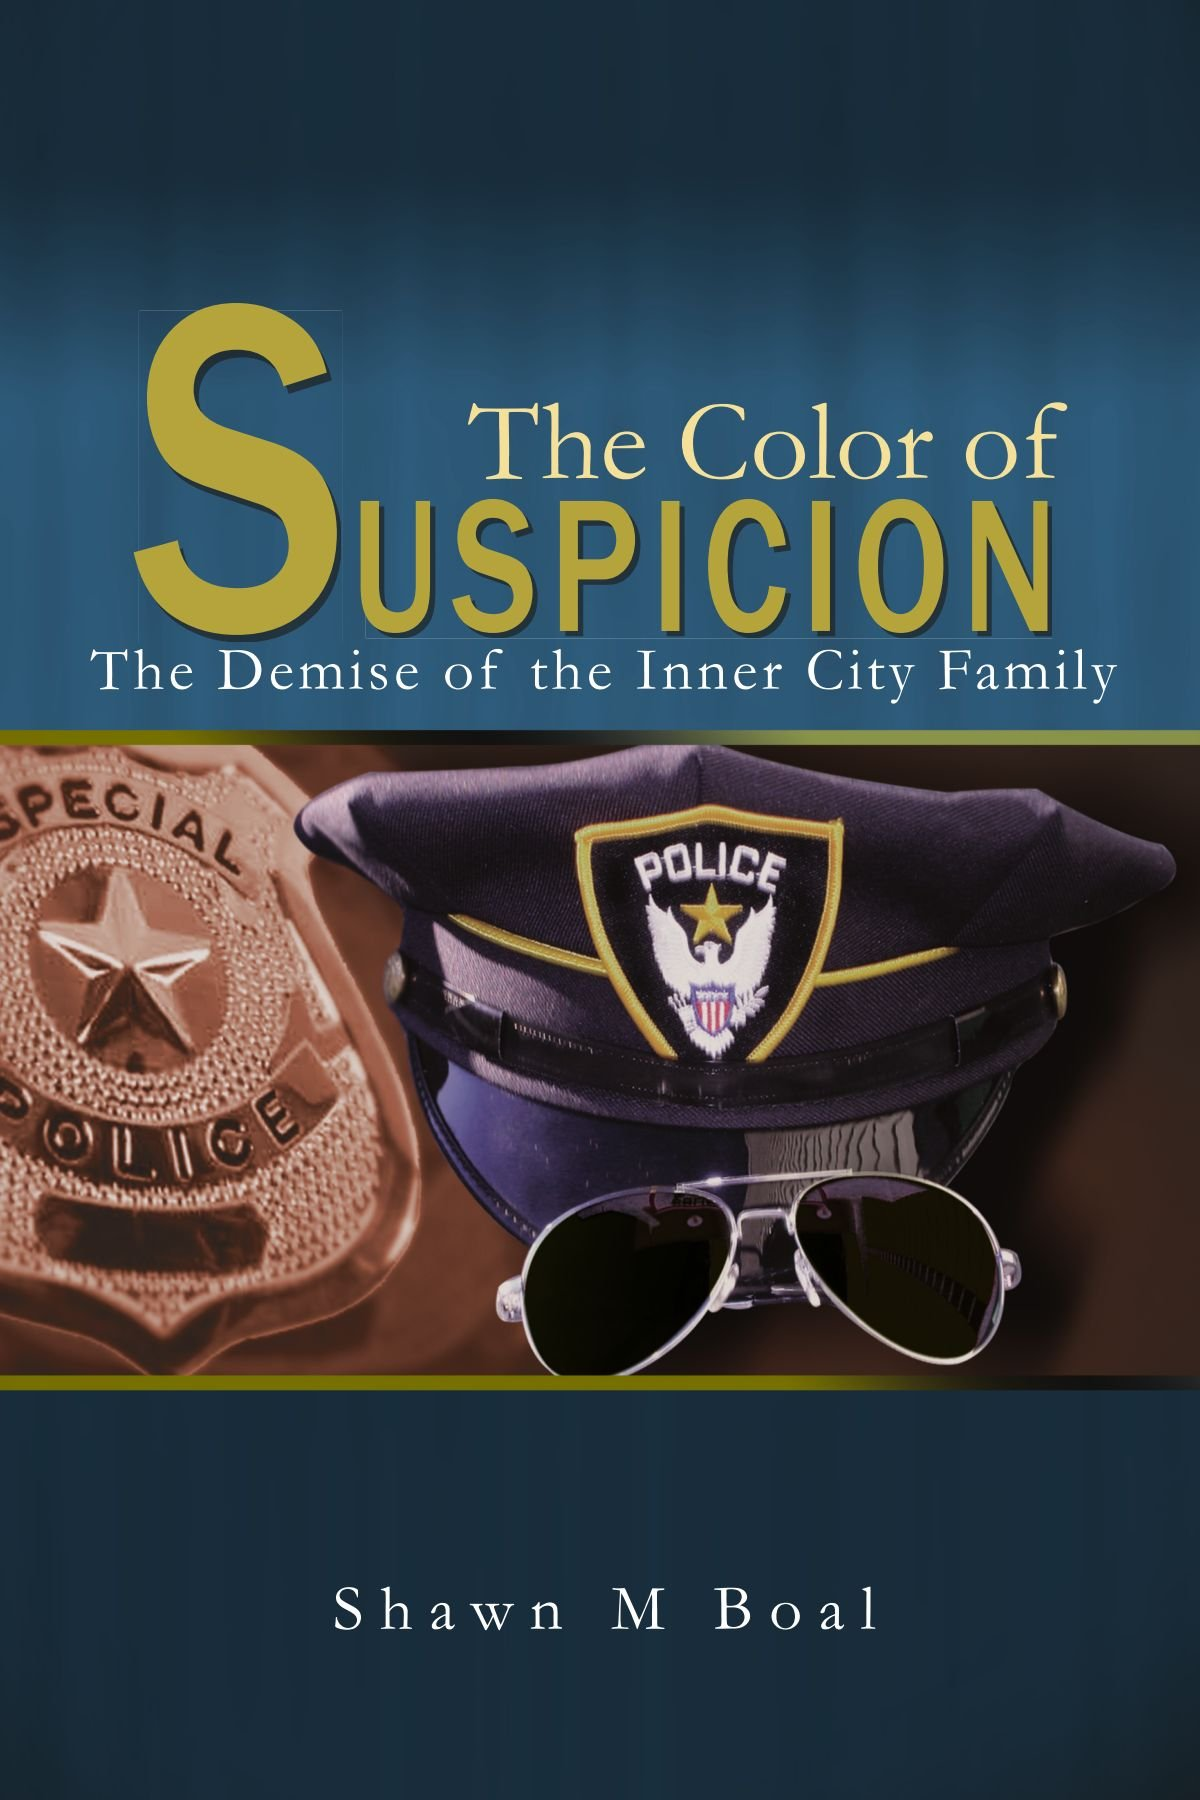 Download The Color Of Suspicion: The Demise of the Inner City Family ebook